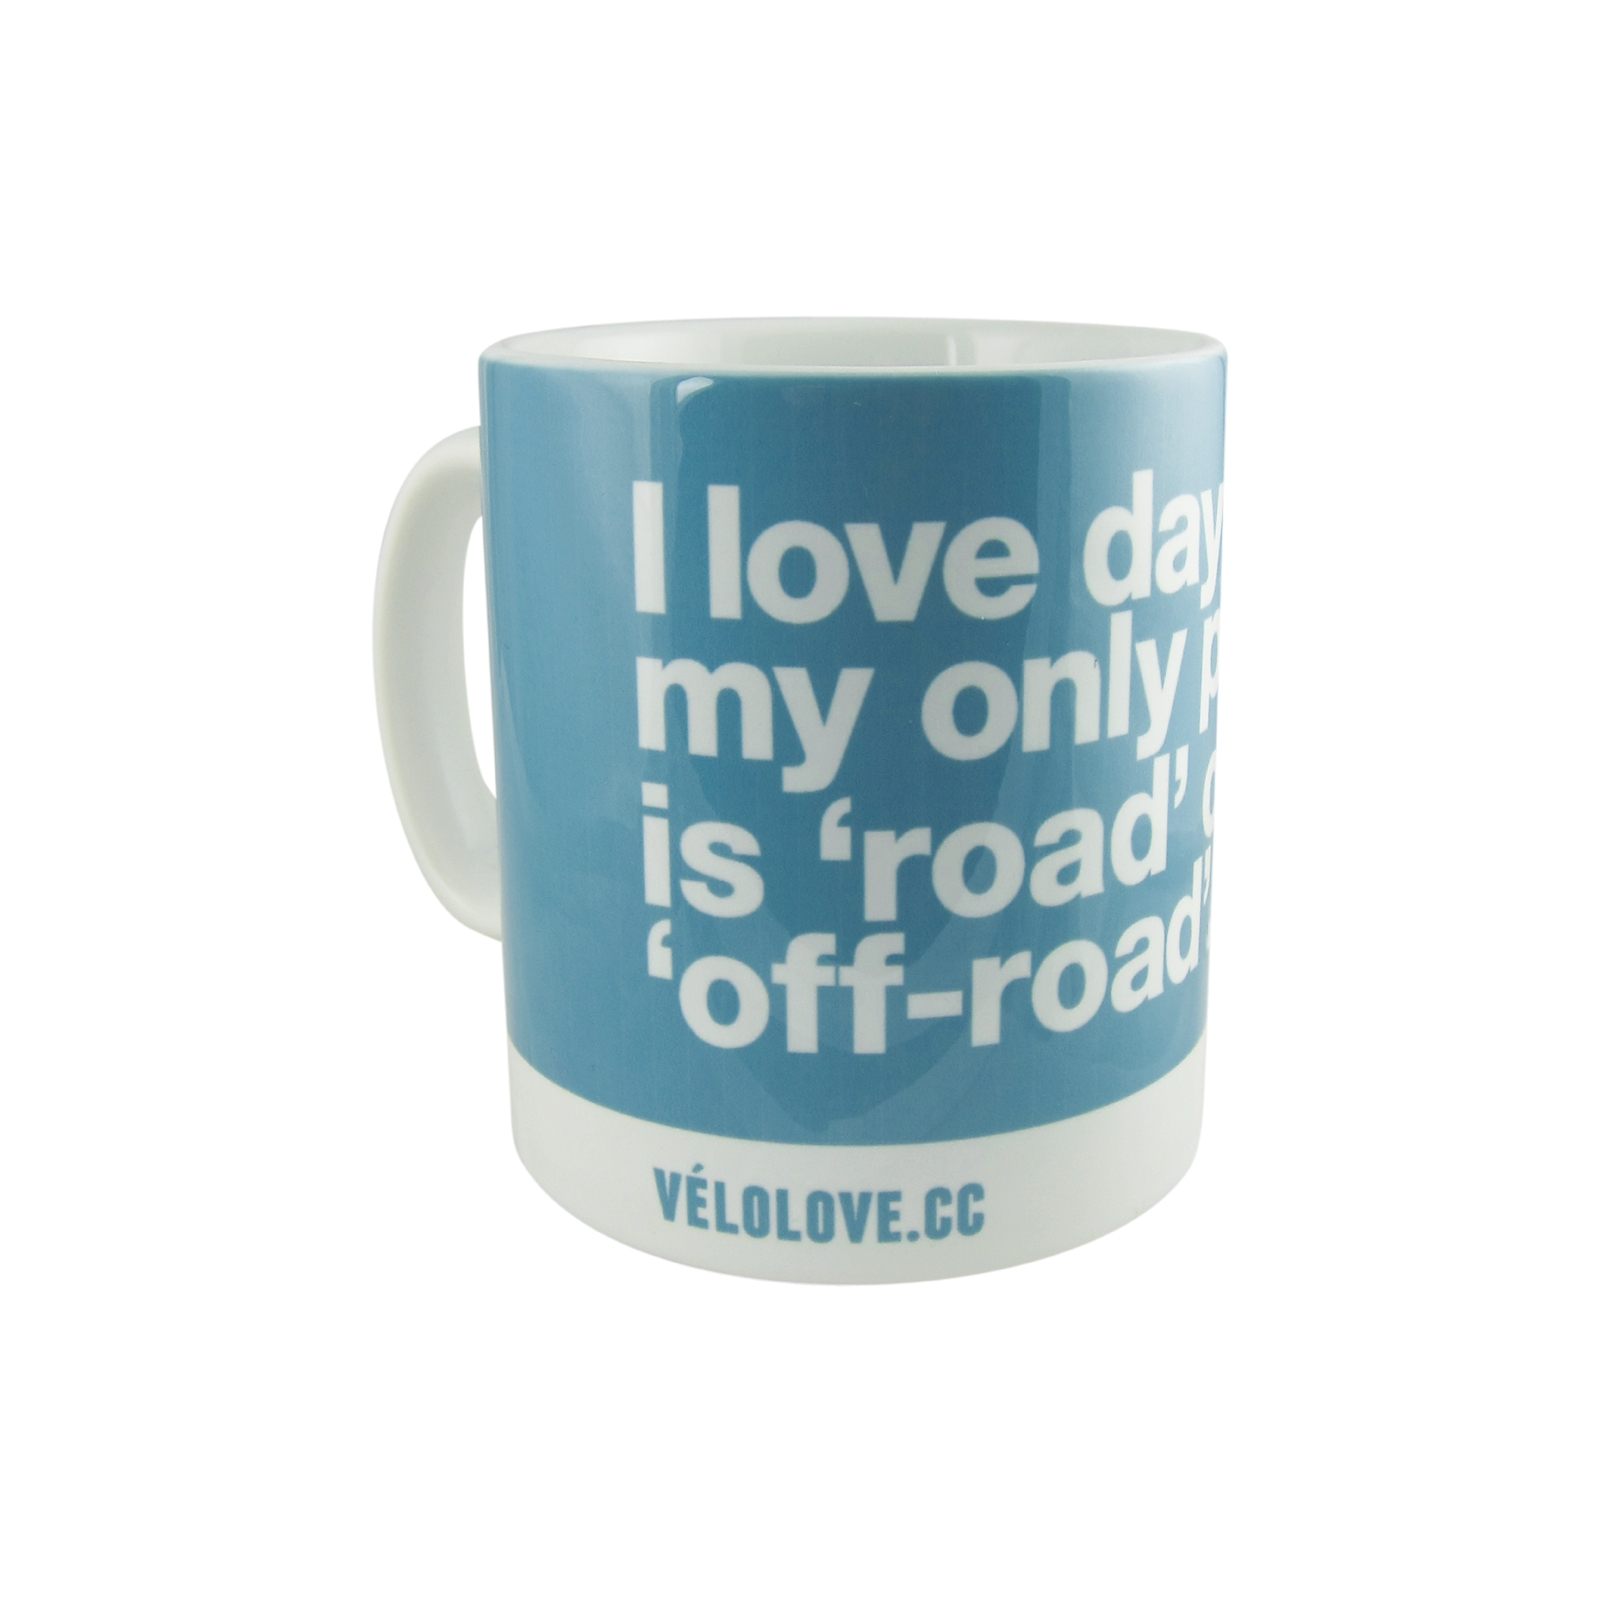 Velolove I love days when my only problem is 'road' or 'off |